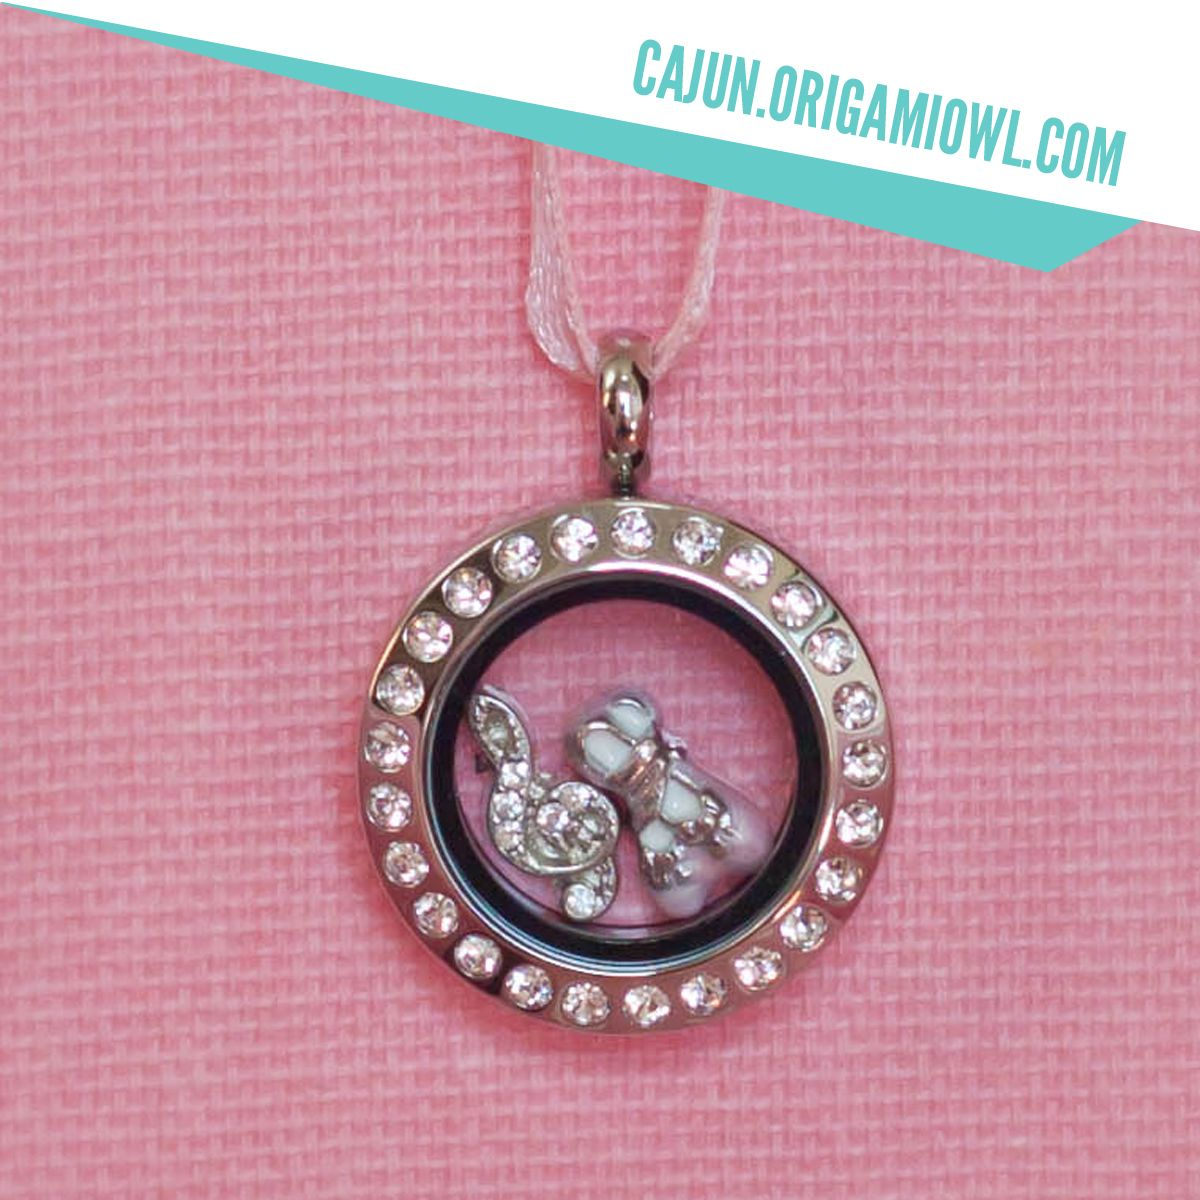 Origami owl dance locket mini silver crystal locket with treble origami owl dance locket mini silver crystal locket with treble clef and ballet slipper charms jeuxipadfo Image collections